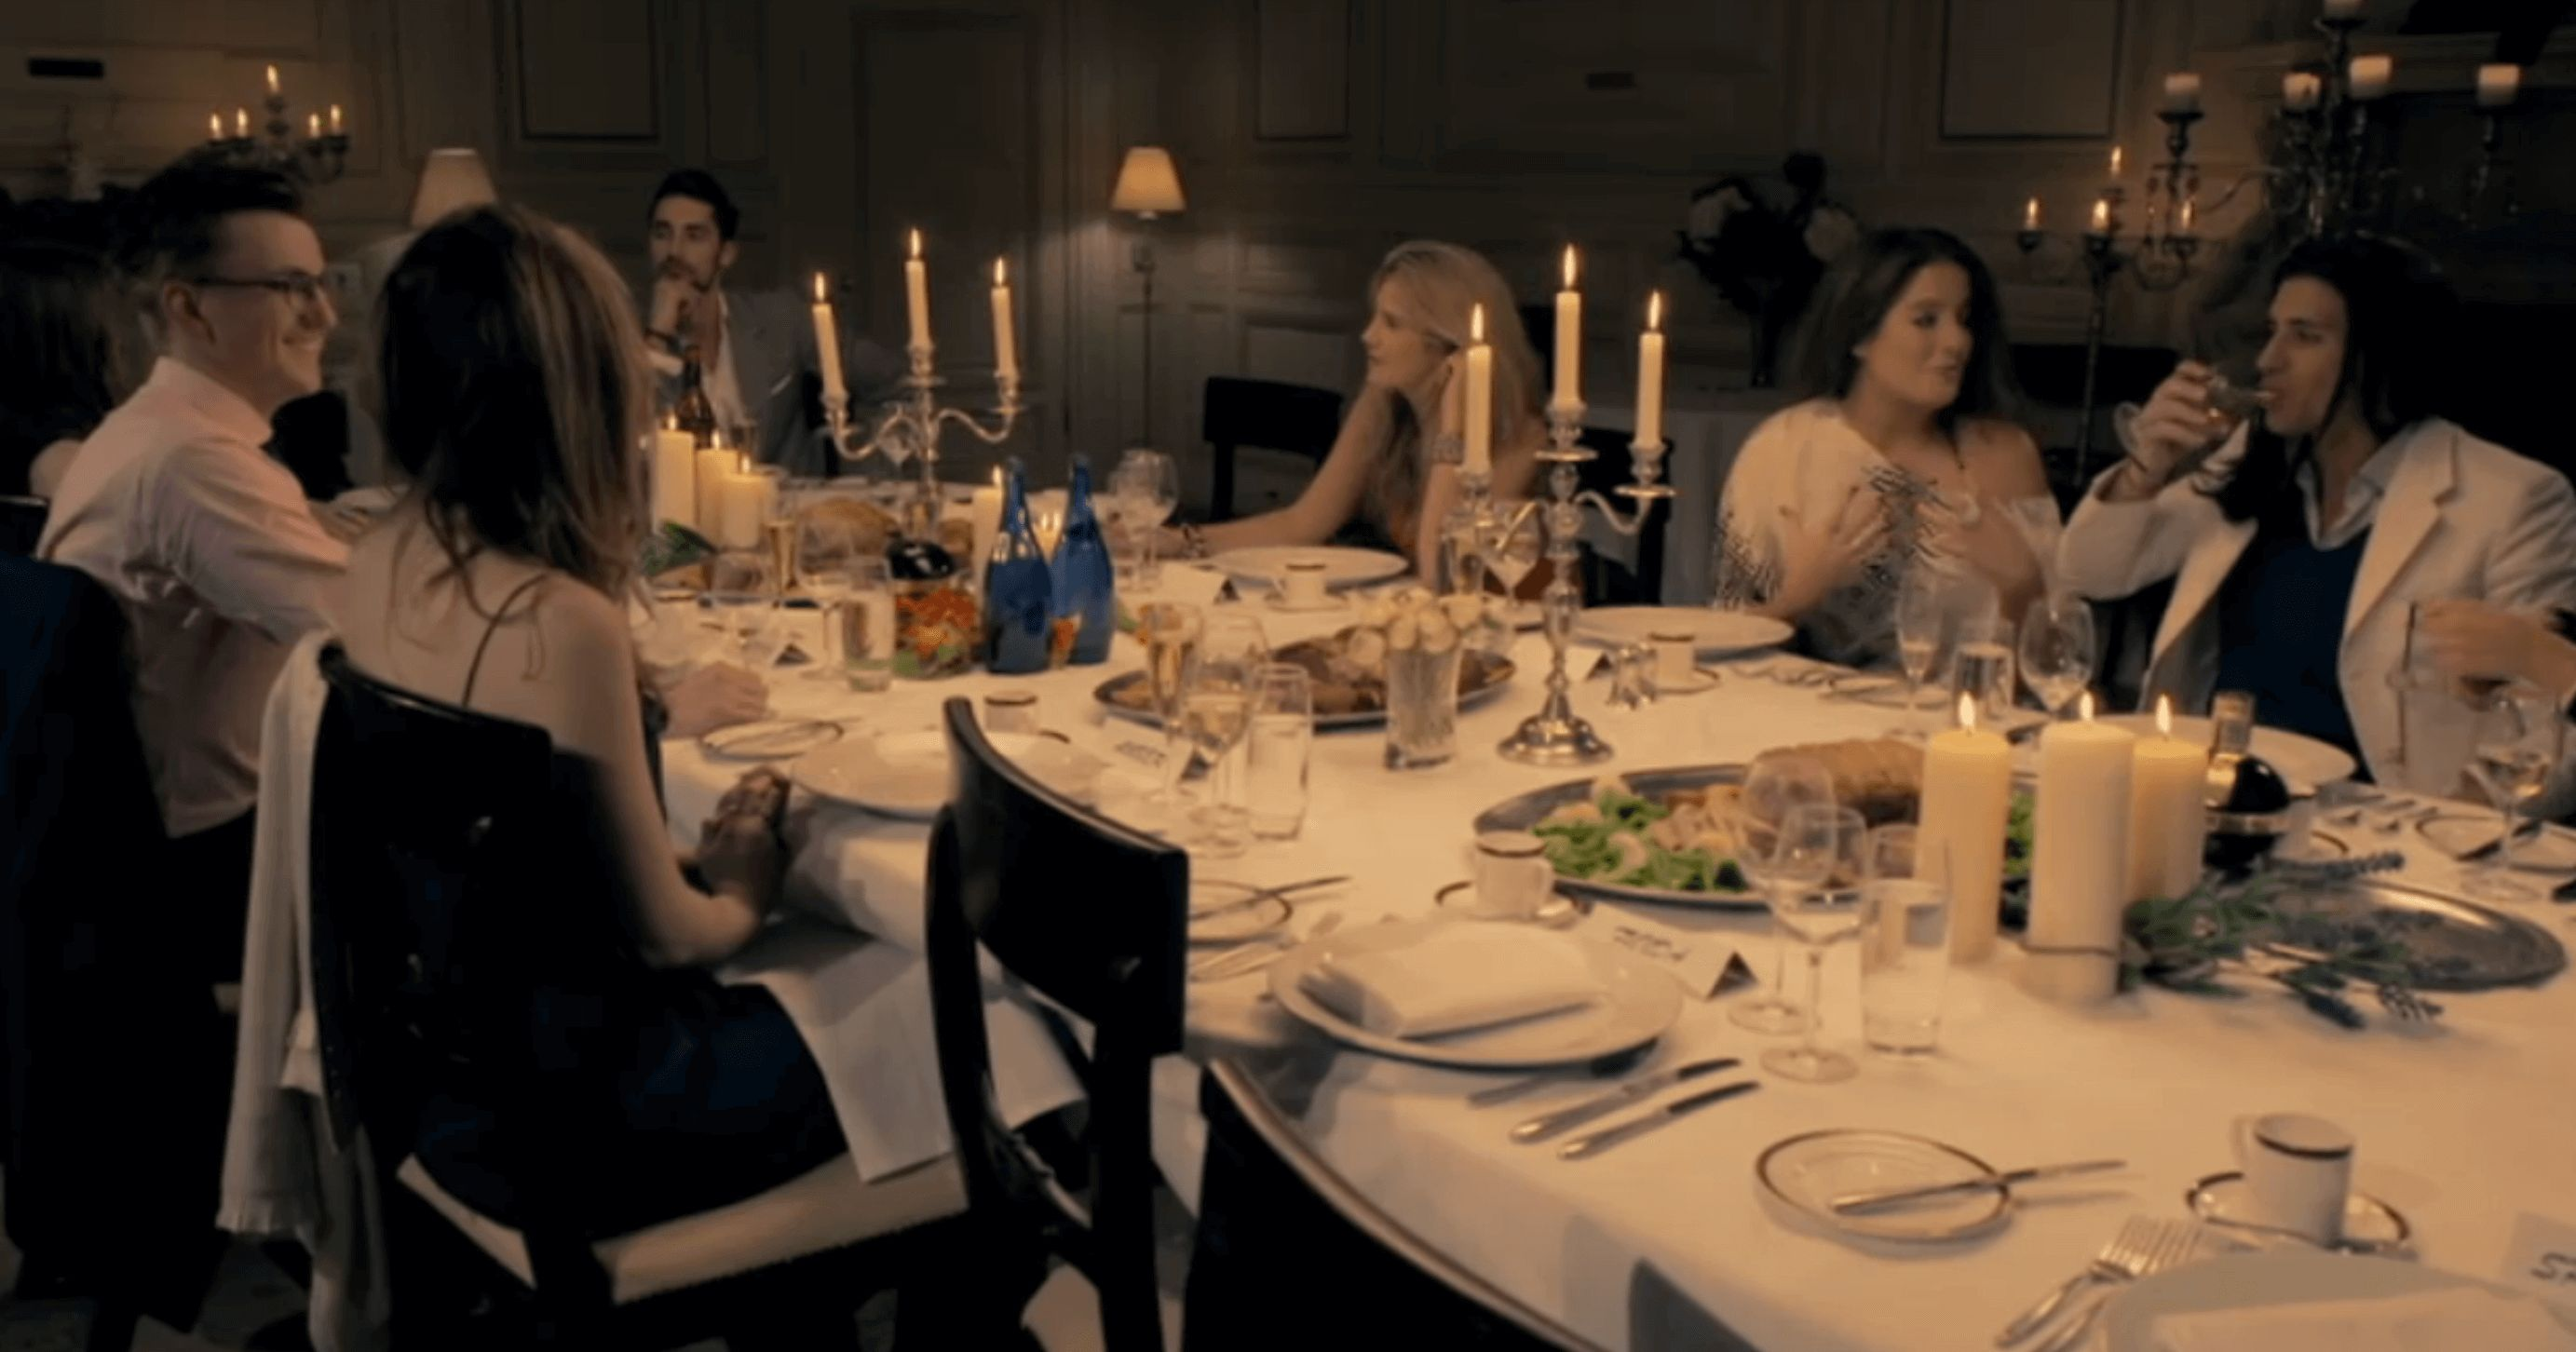 Image may contain: Made in Chelsea is staged, Made in Chelsea, series one, season 1, first episode, dinner party, Binky, Ollie Locke, Home Decor, Tablecloth, Glass, Room, Indoors, Dining Room, Restaurant, Dining Table, Table, Human, Person, Chair, Furniture